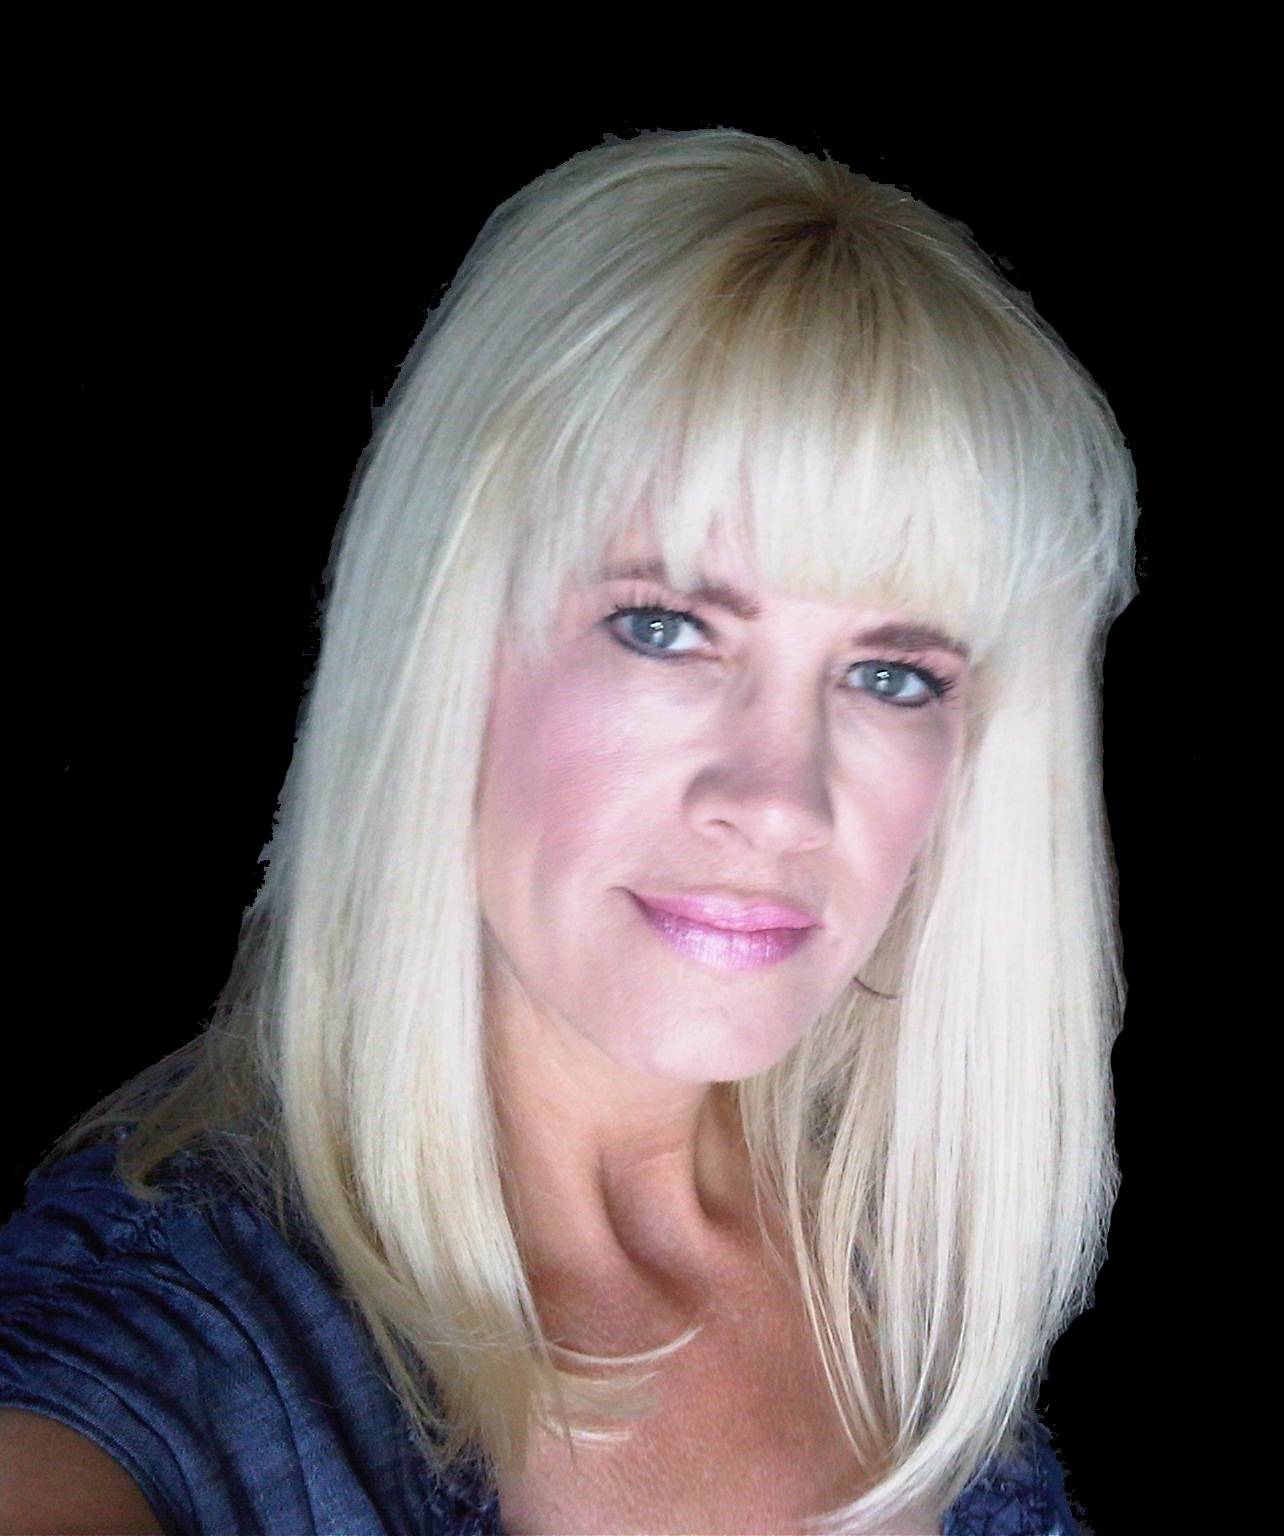 Profile Photo for Kimberly Howell